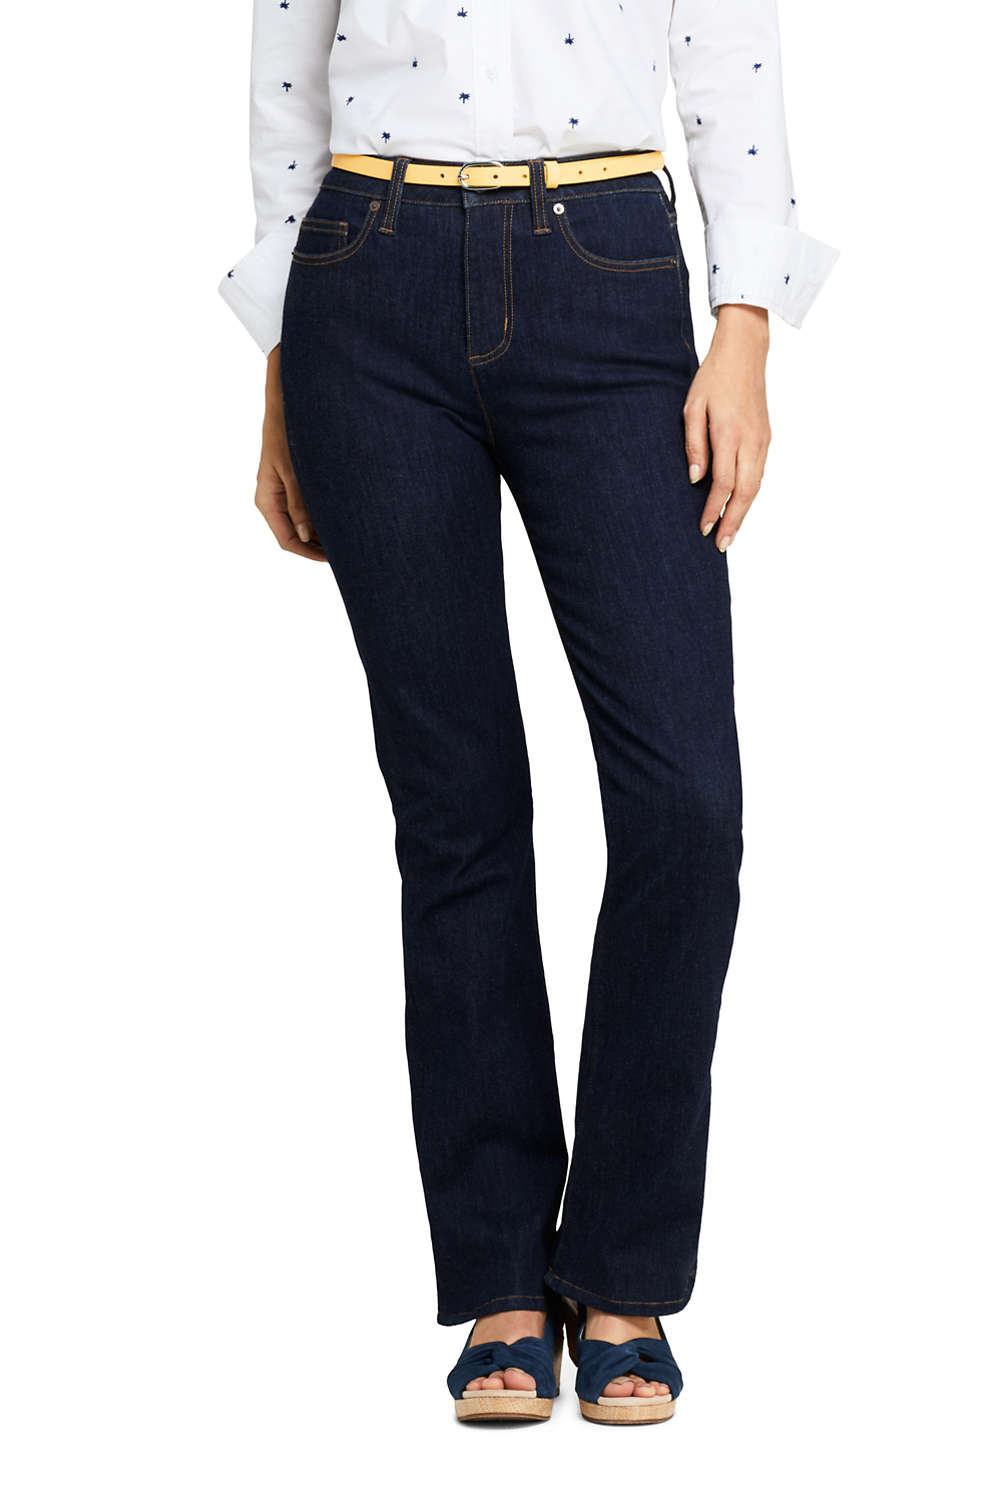 c44cda35851 Women s Mid Rise Curvy Boot Cut Jeans from Lands  End